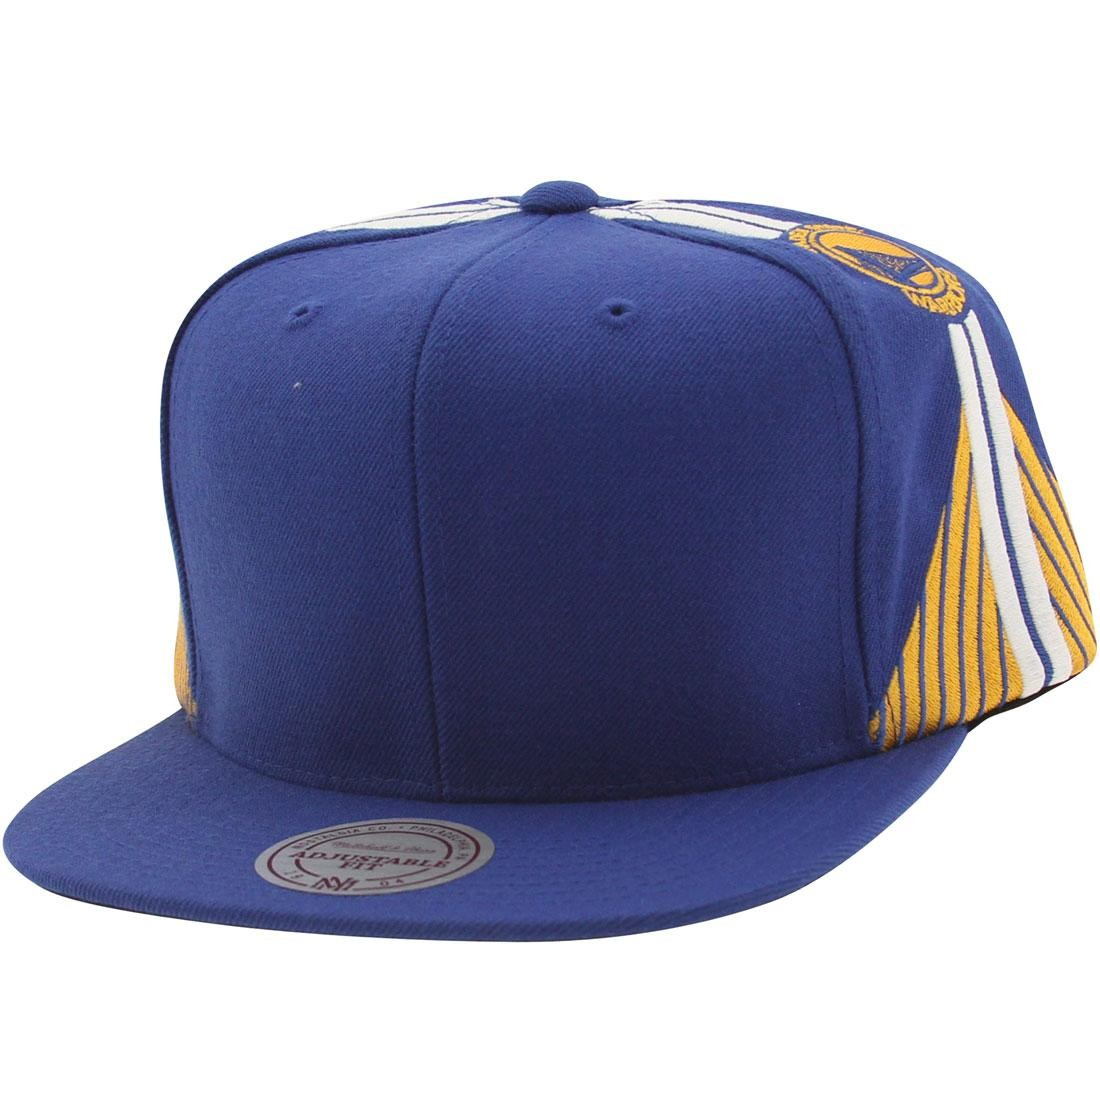 hot sale online 9faee 220ee Mitchell And Ness Golden State Warriors Blank Front Snapback Cap blue